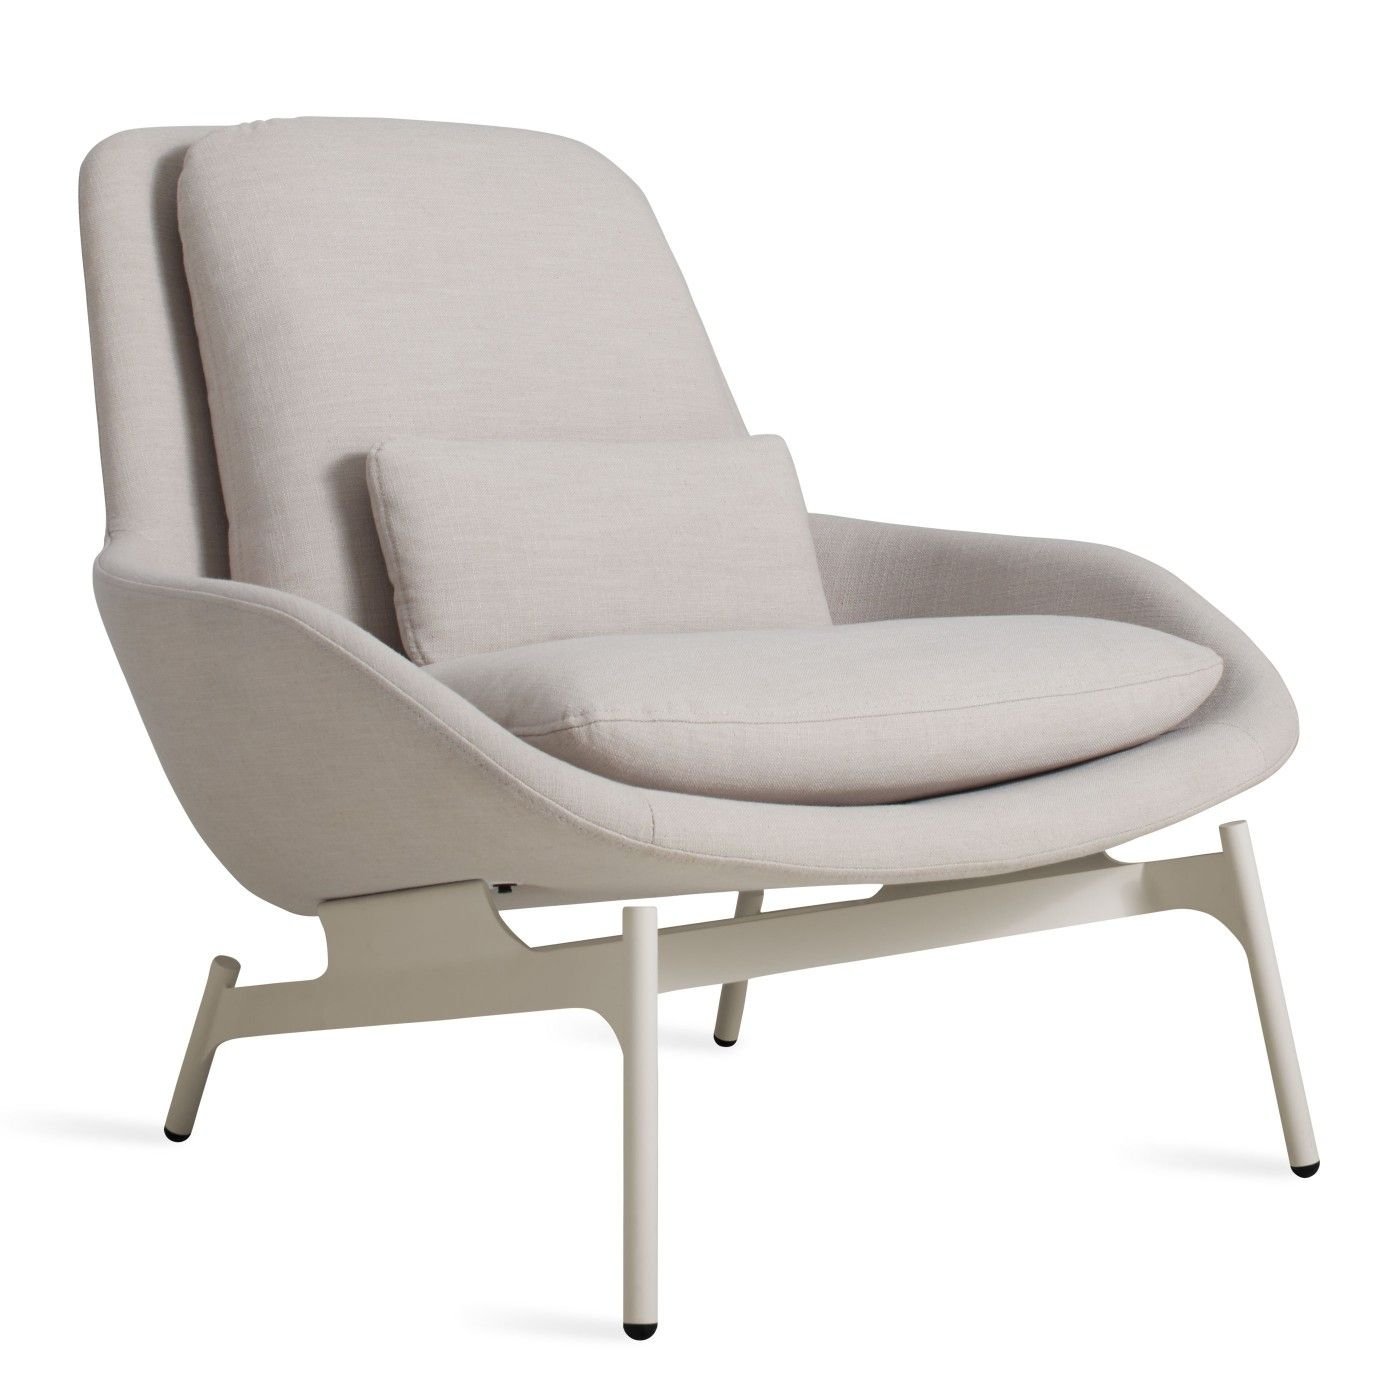 Modern Reading Chair For Contemporary Homes. Field Lounge Chair Is Perfect  For Reading Or Lounging.